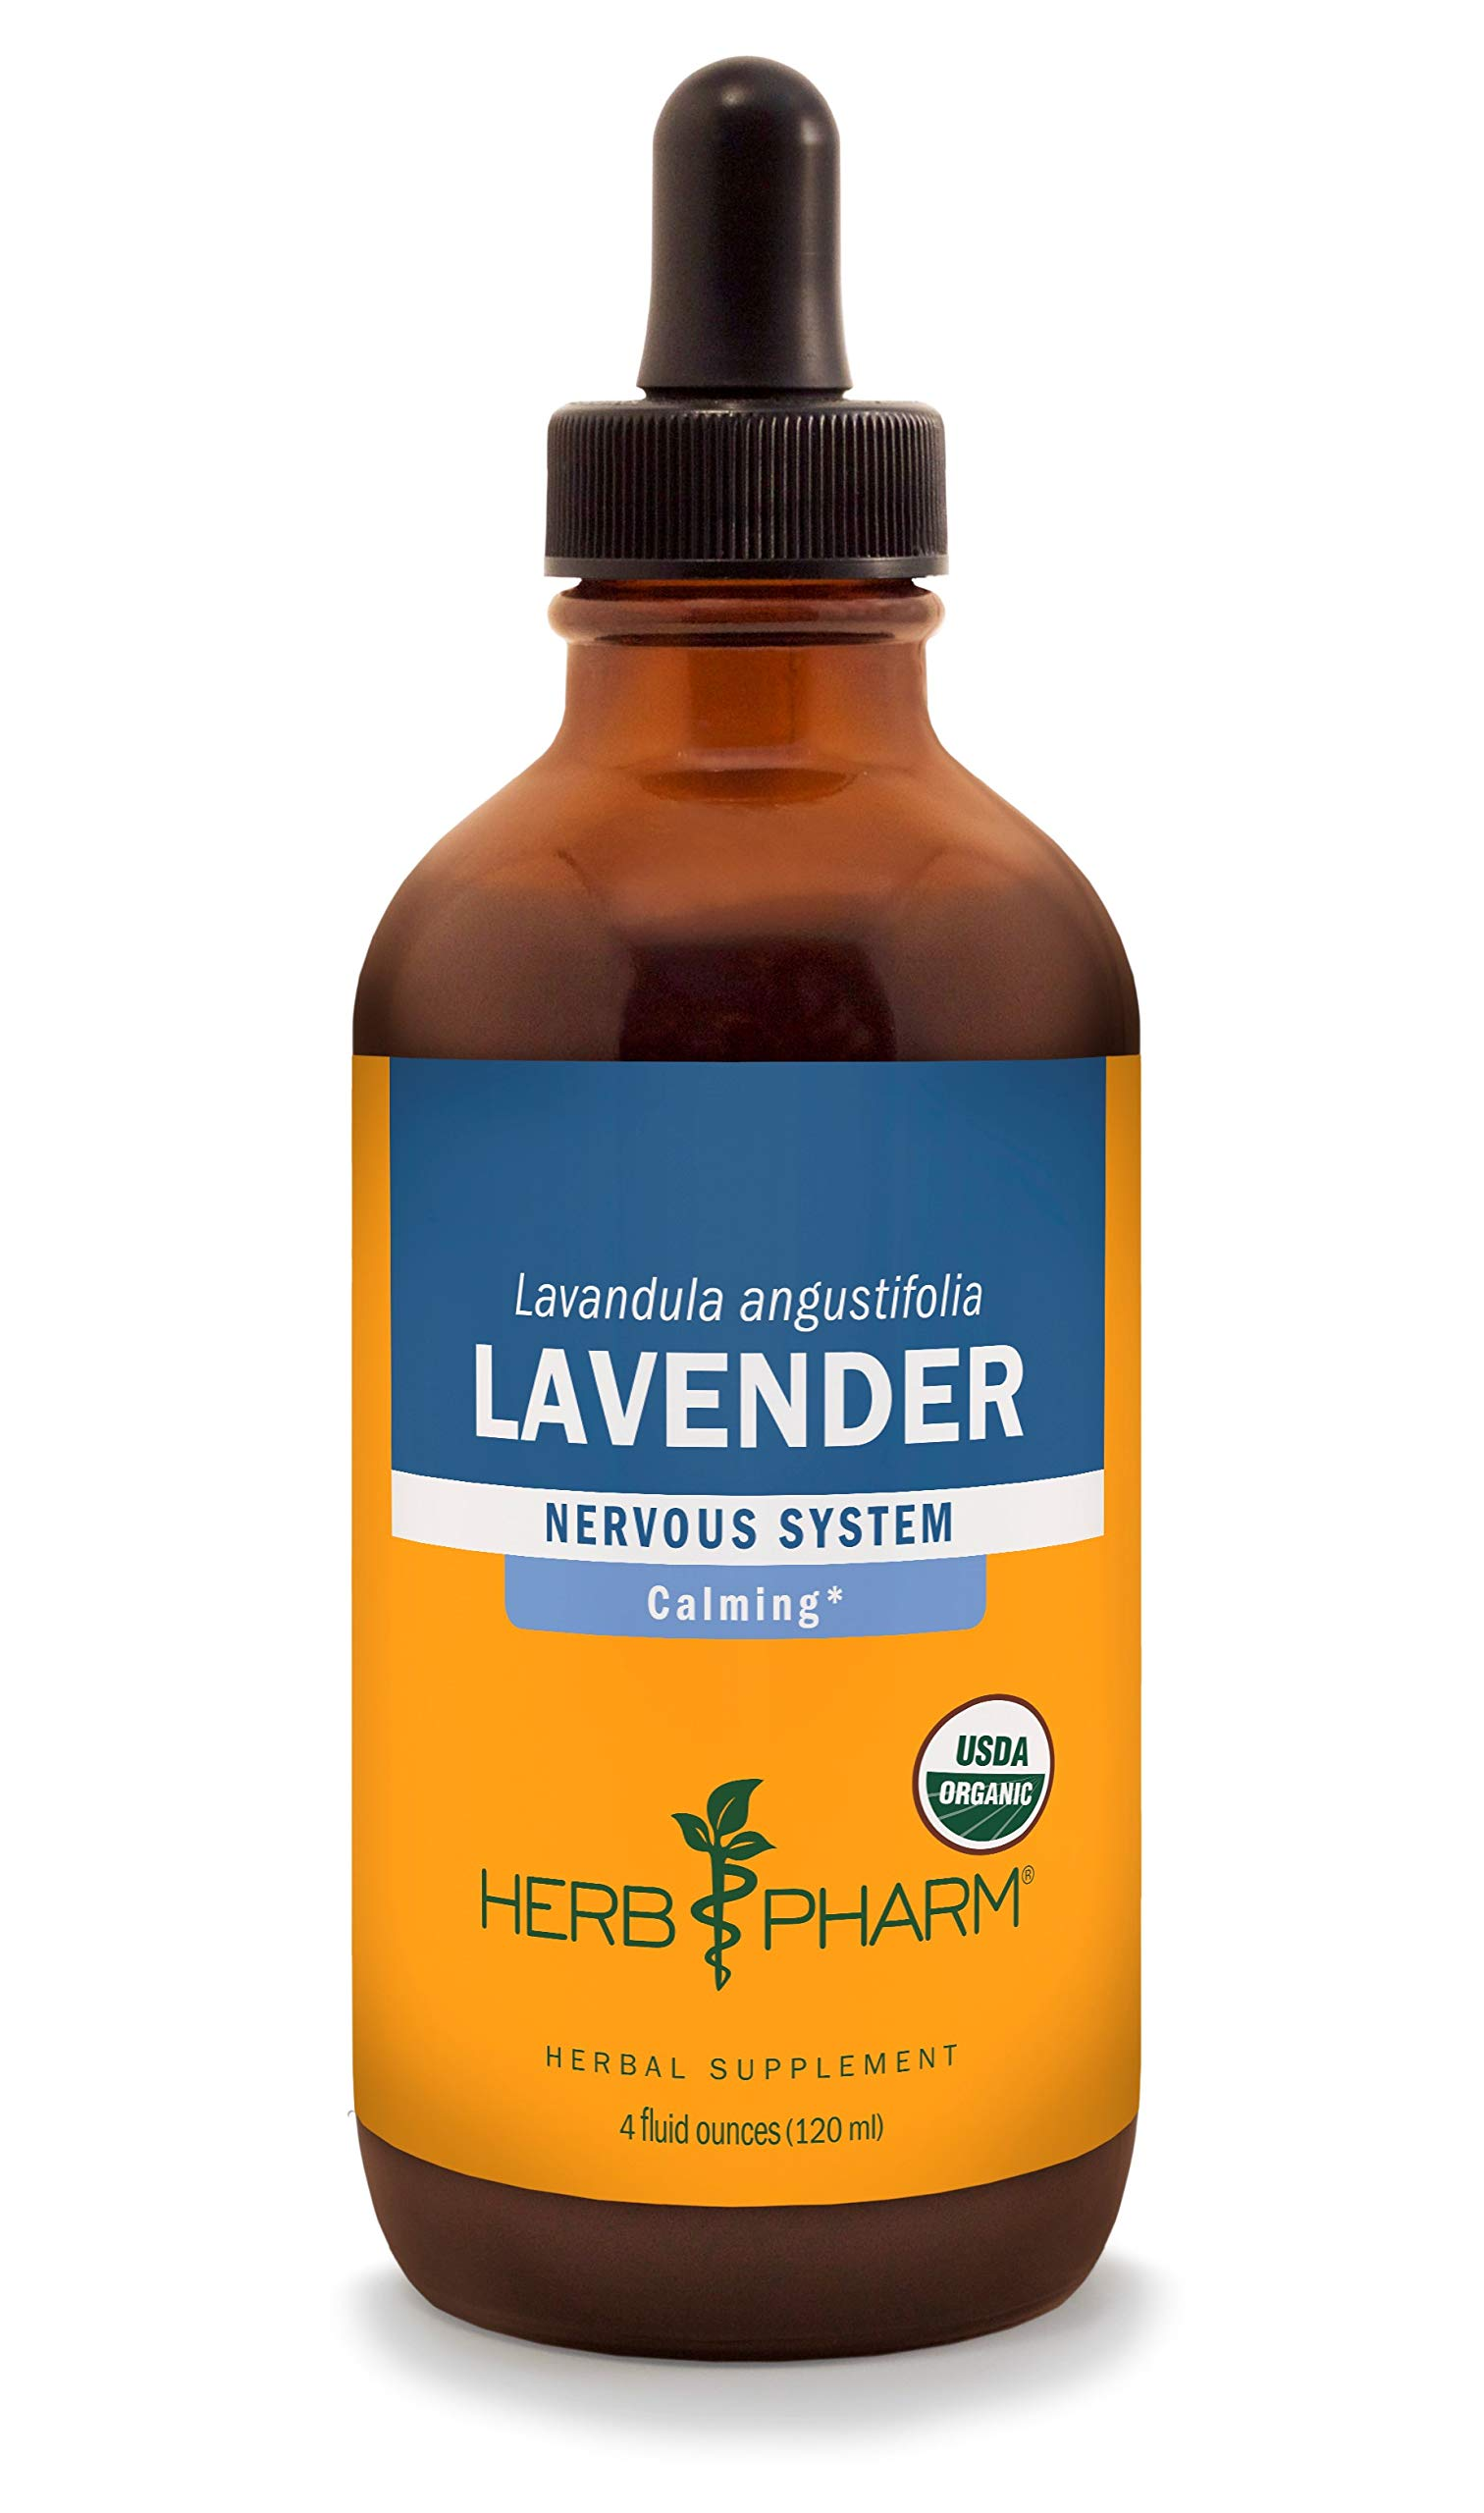 Herb Pharm Certified Organic Lavender Flower Liquid Extract for Calming Nervous System Support - 4 Ounce